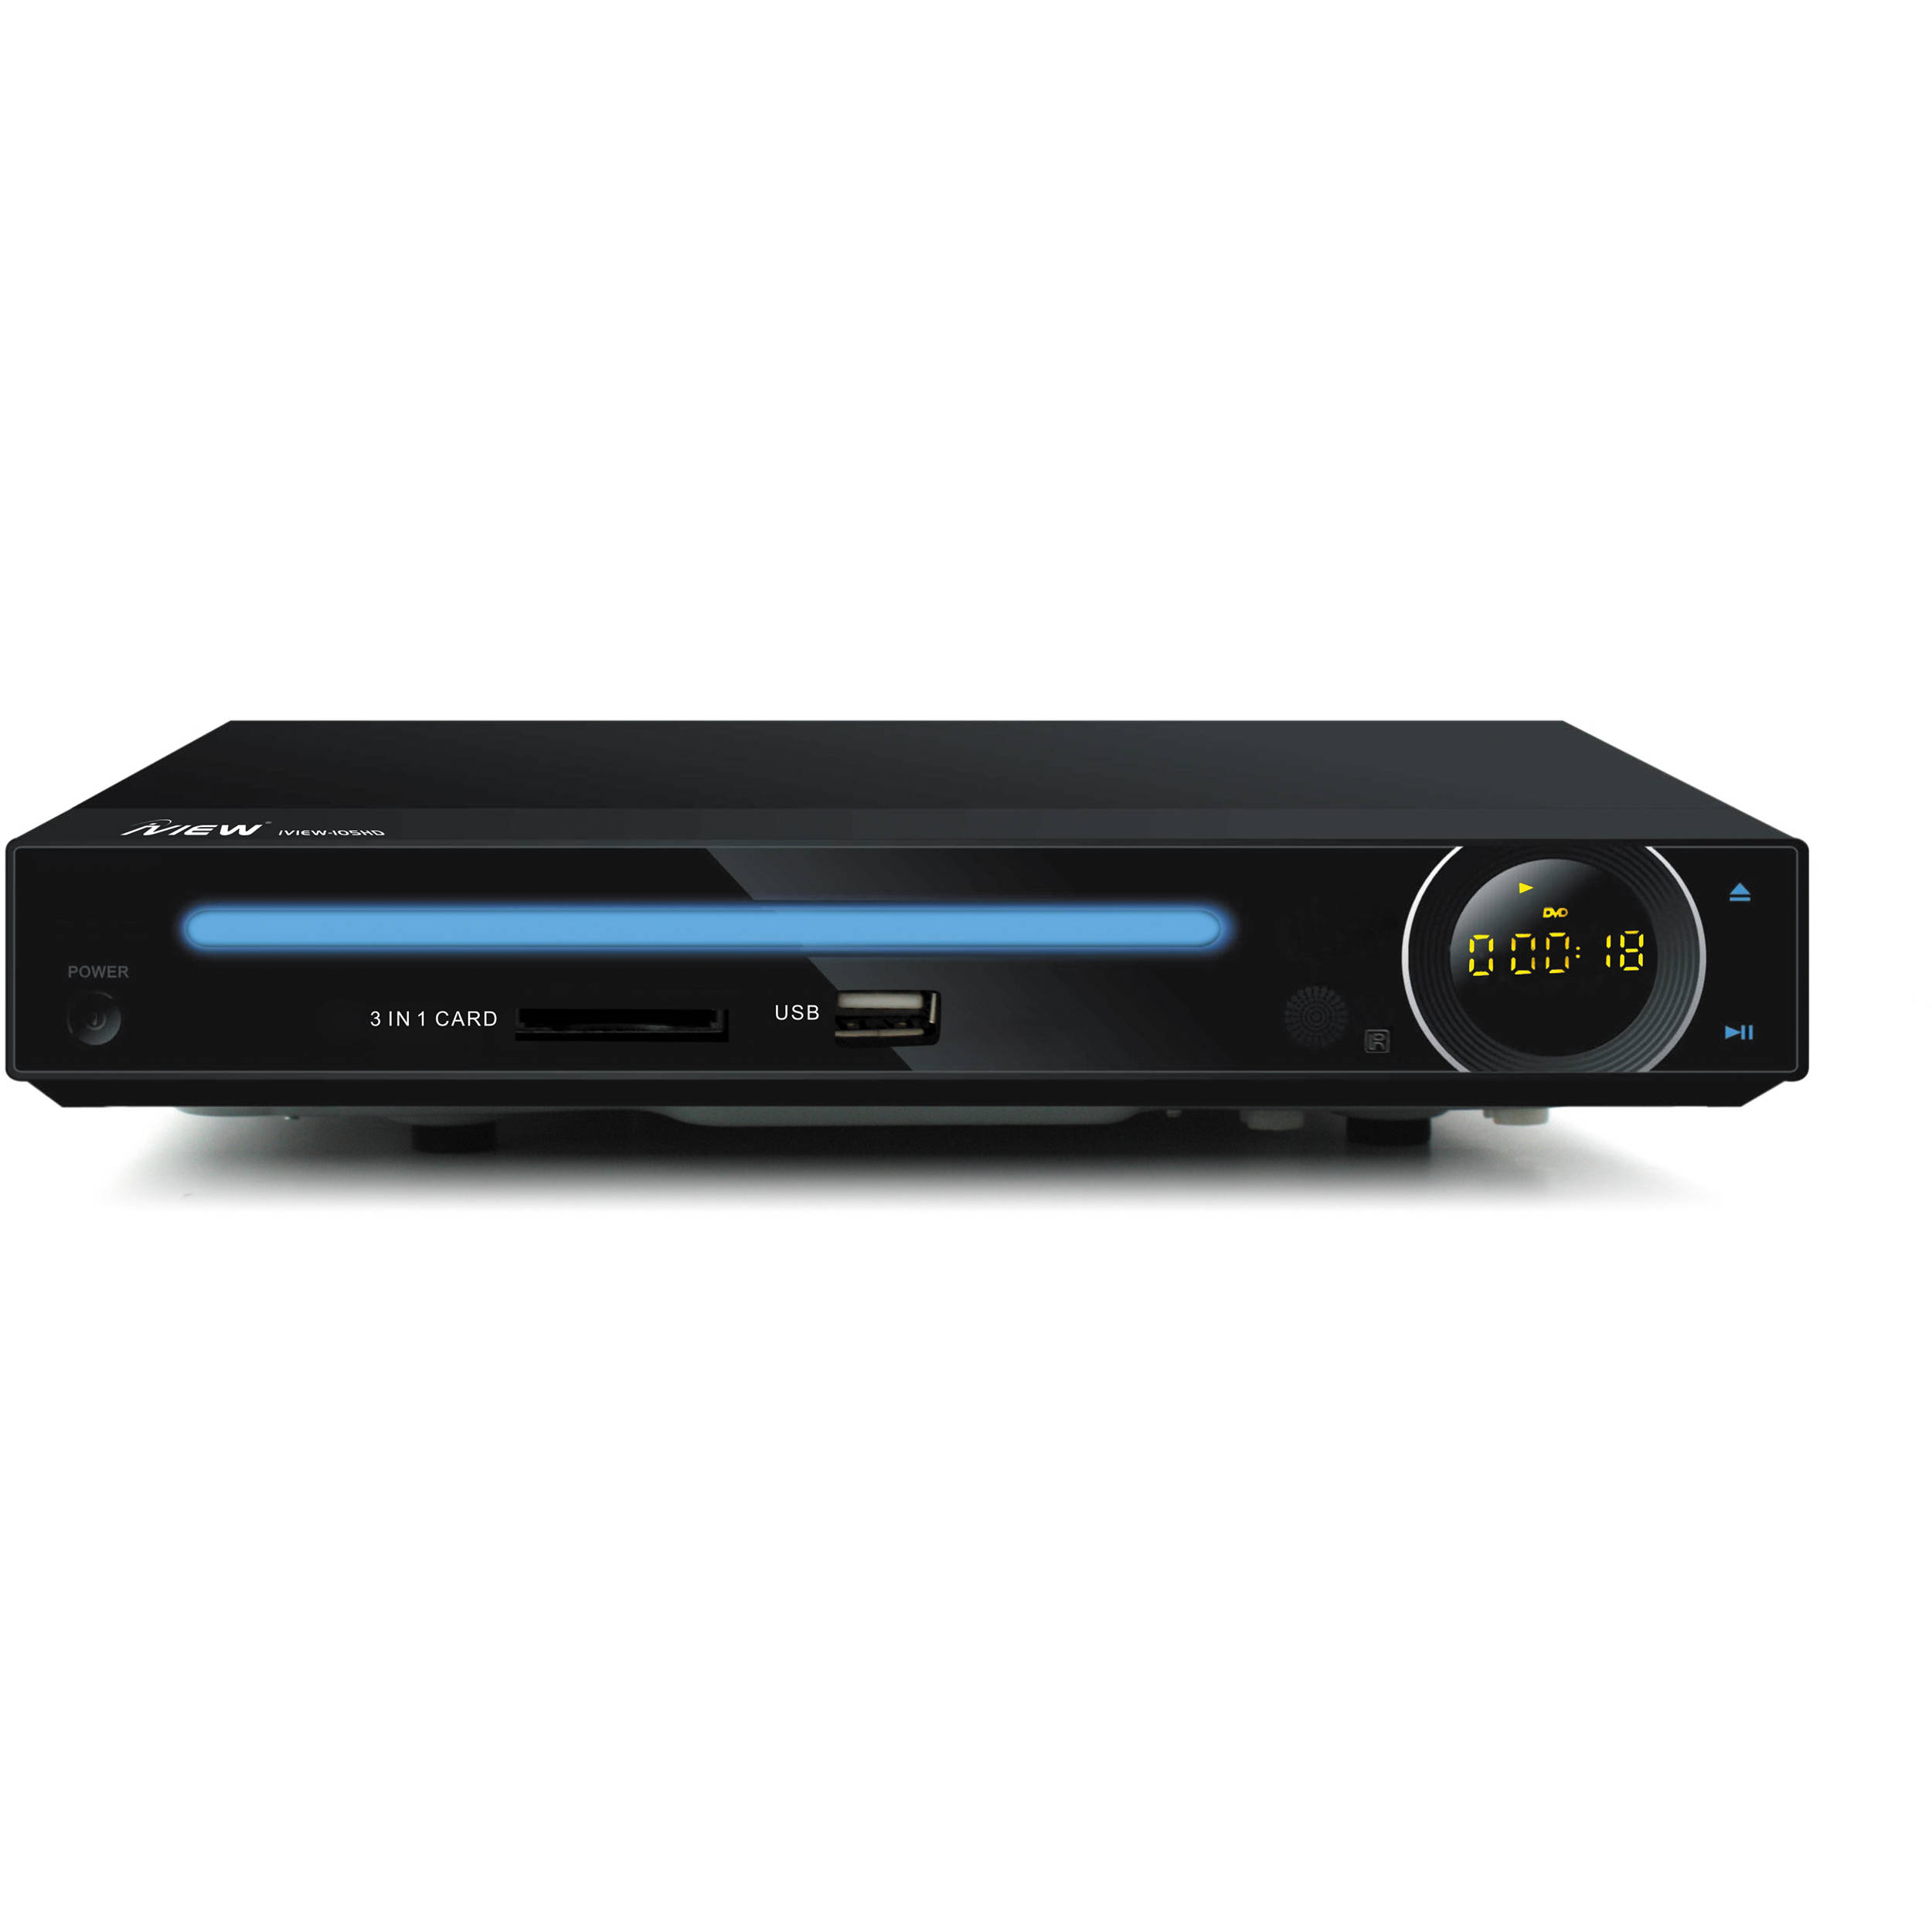 Compact Dvd Player With Usb Port Rj Technology Inc Iview Hd Hdmi Compact